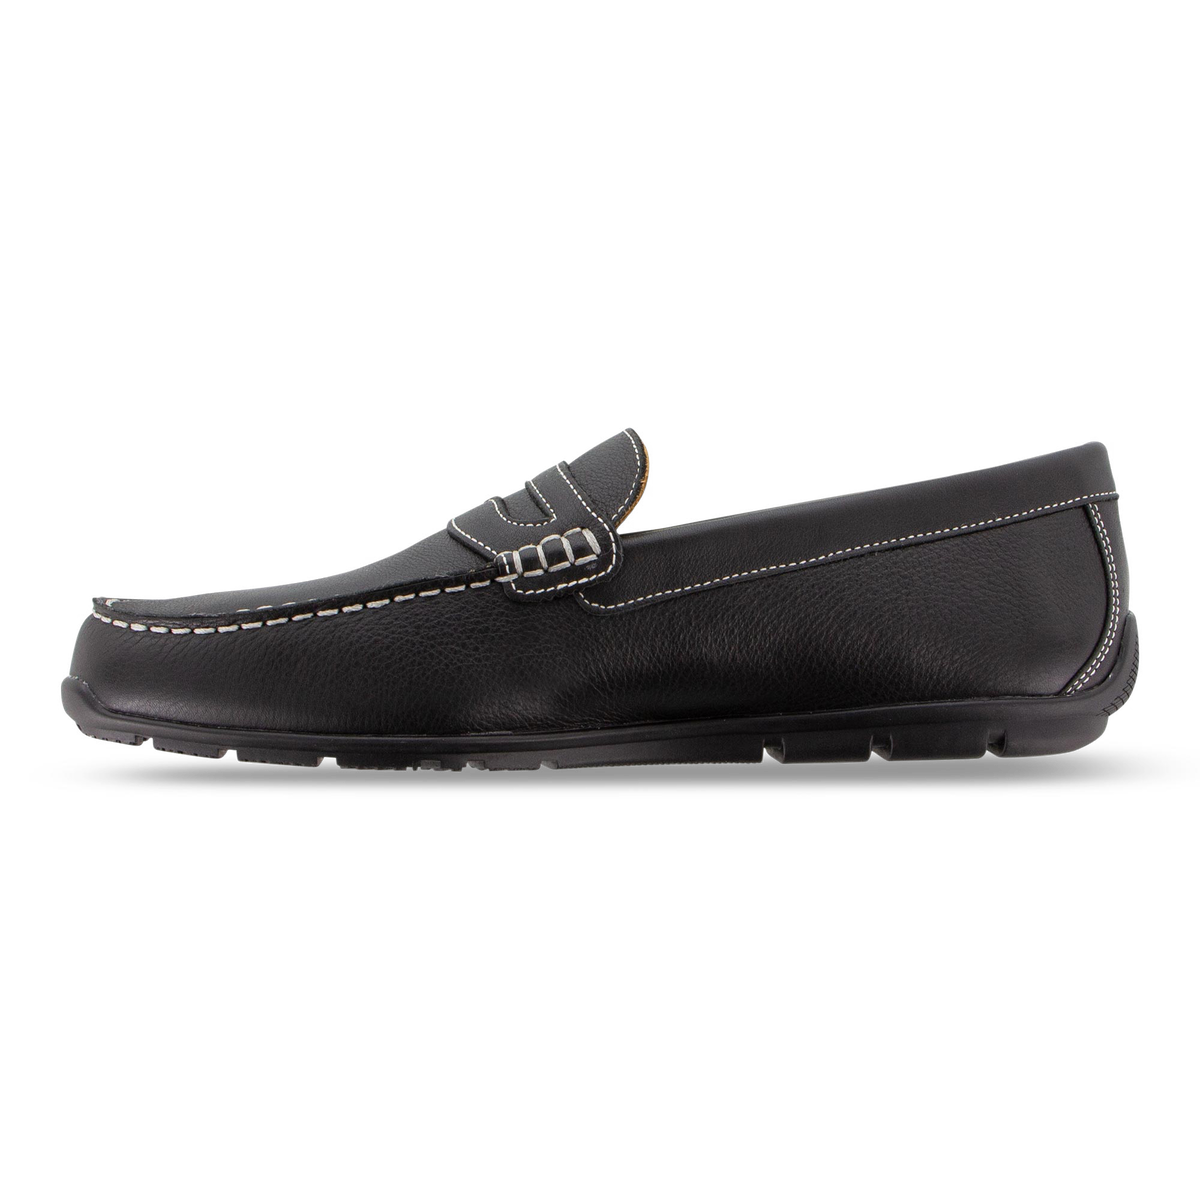 Club Casuals Penny Loafer